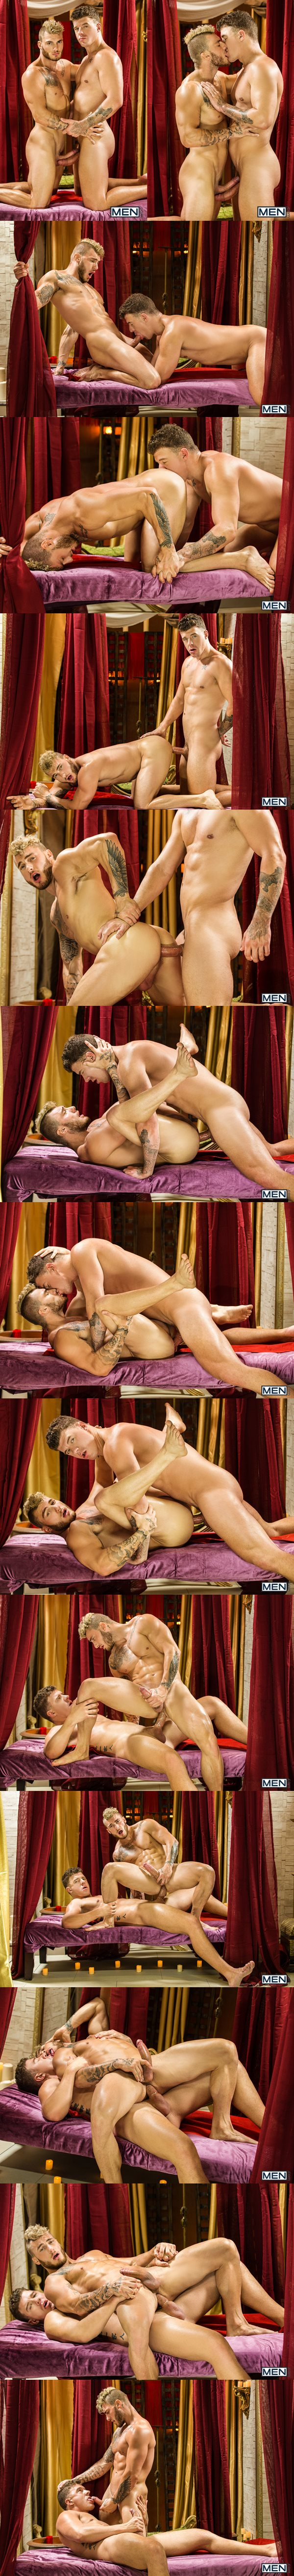 Big dicked JJ Knight (Eromenos) fucks Canadian beefcake William Seed (Erastes) in Sacred Band Of Thebes Part 1 at Drillmyhole 02